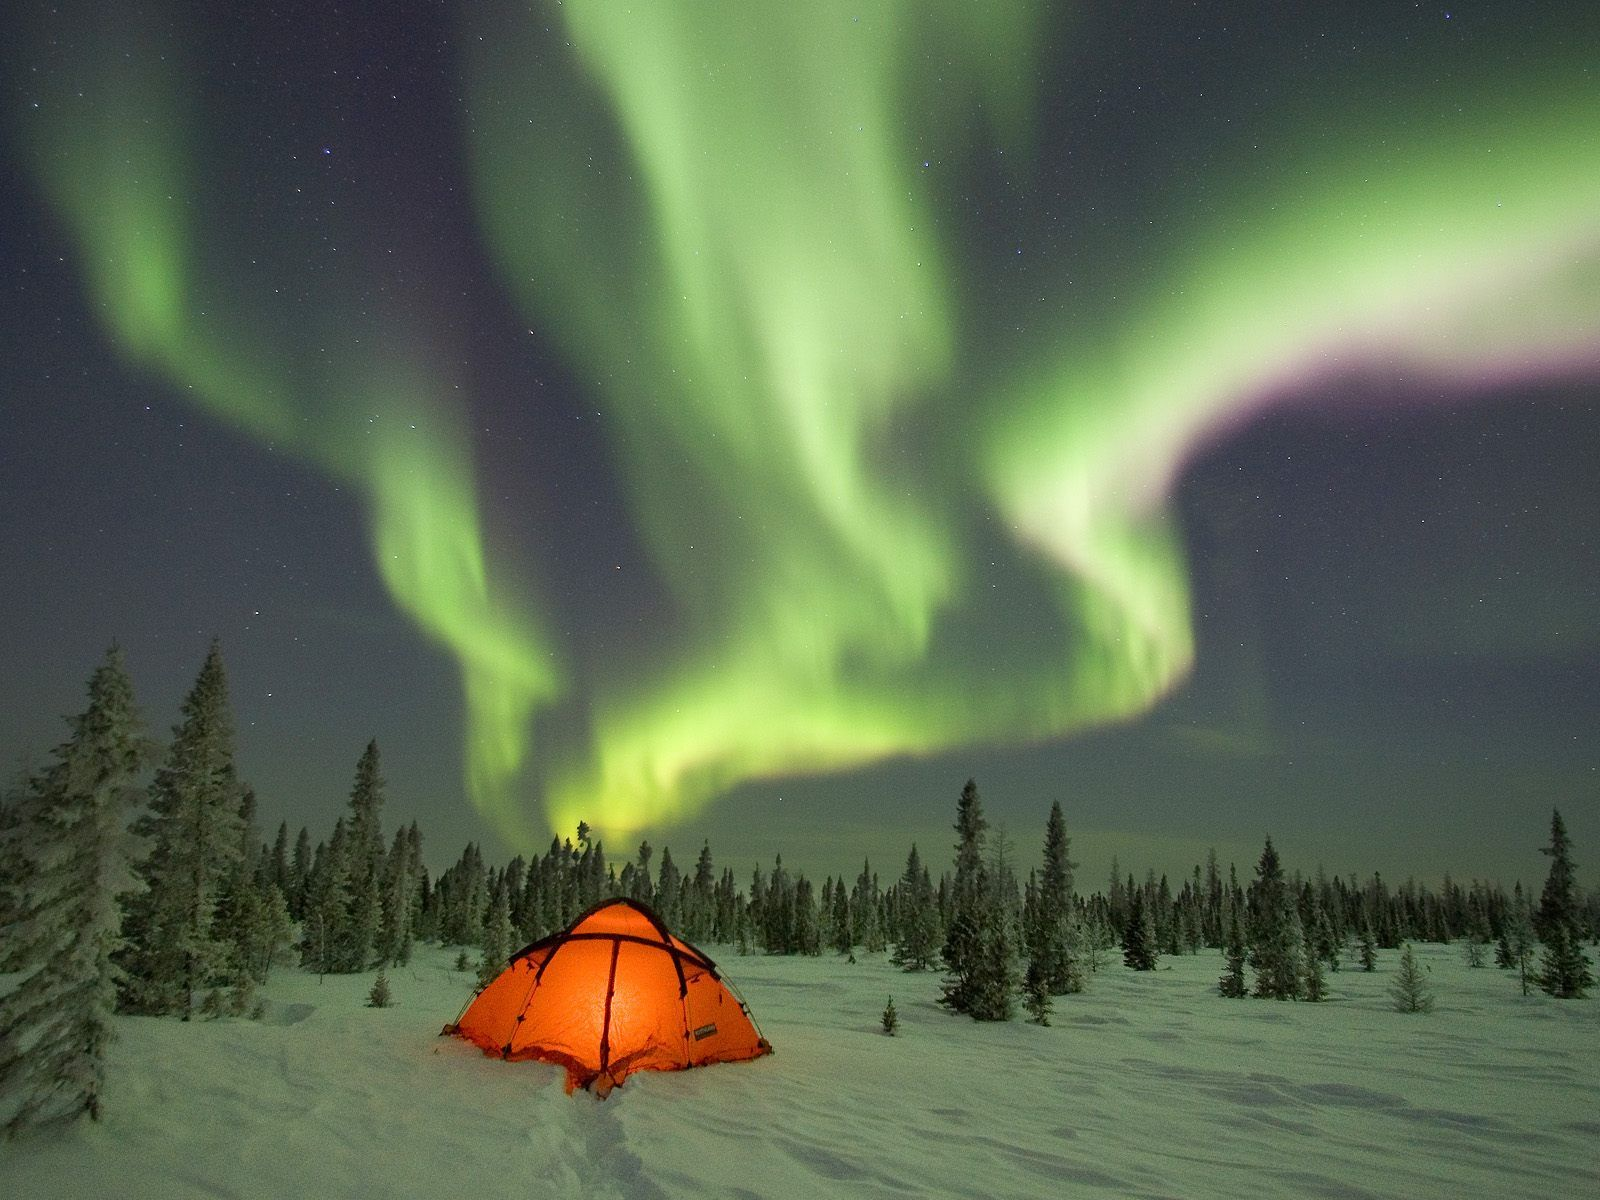 Camping and the Northern Lights <3